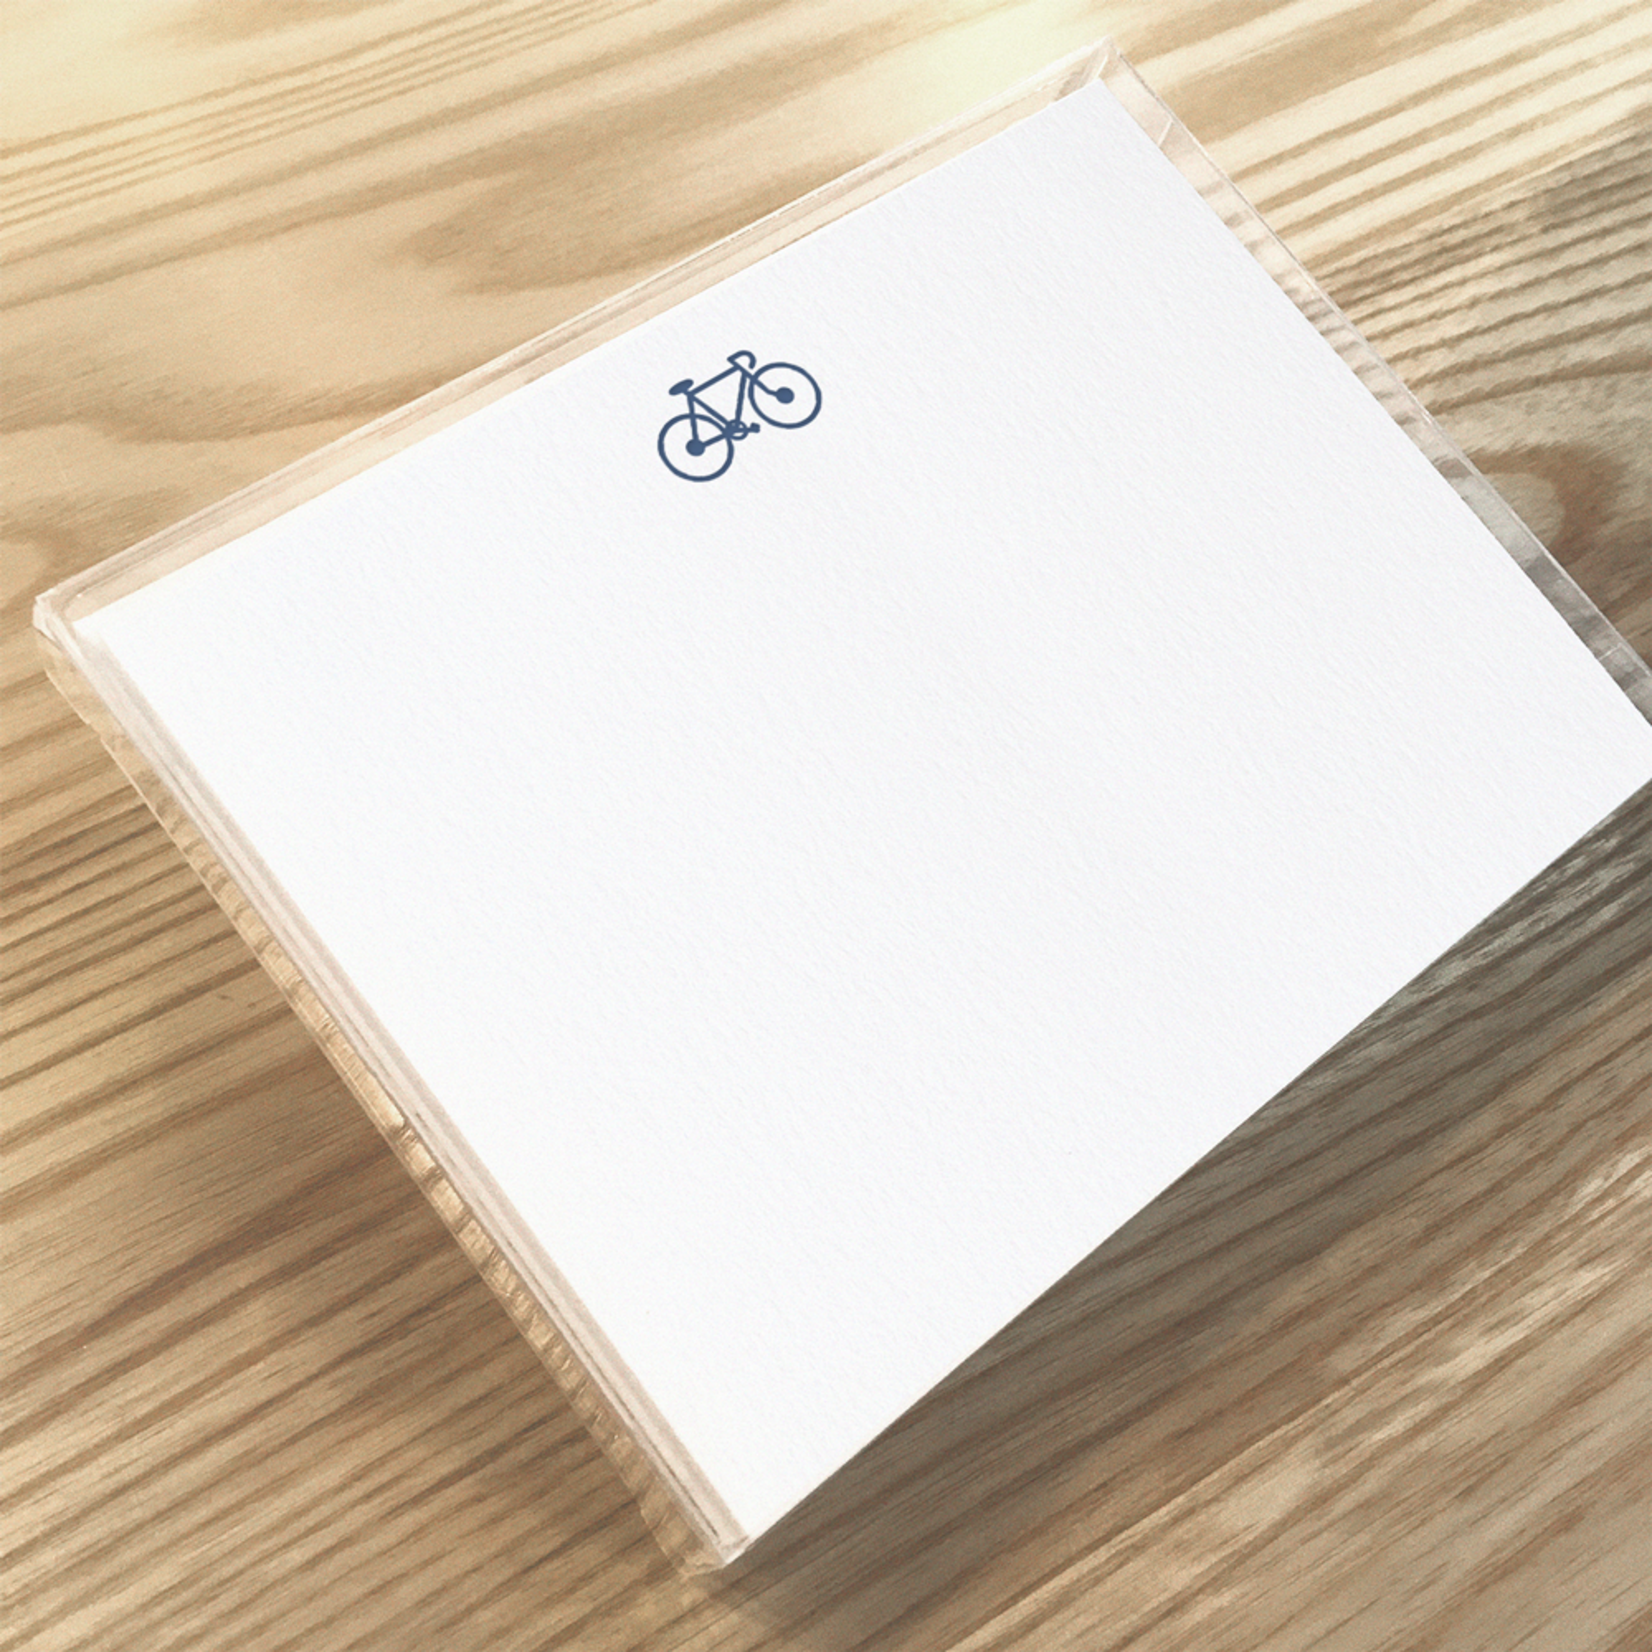 Huckleberry Huckleberry Stationery Set of 12 Bicycle